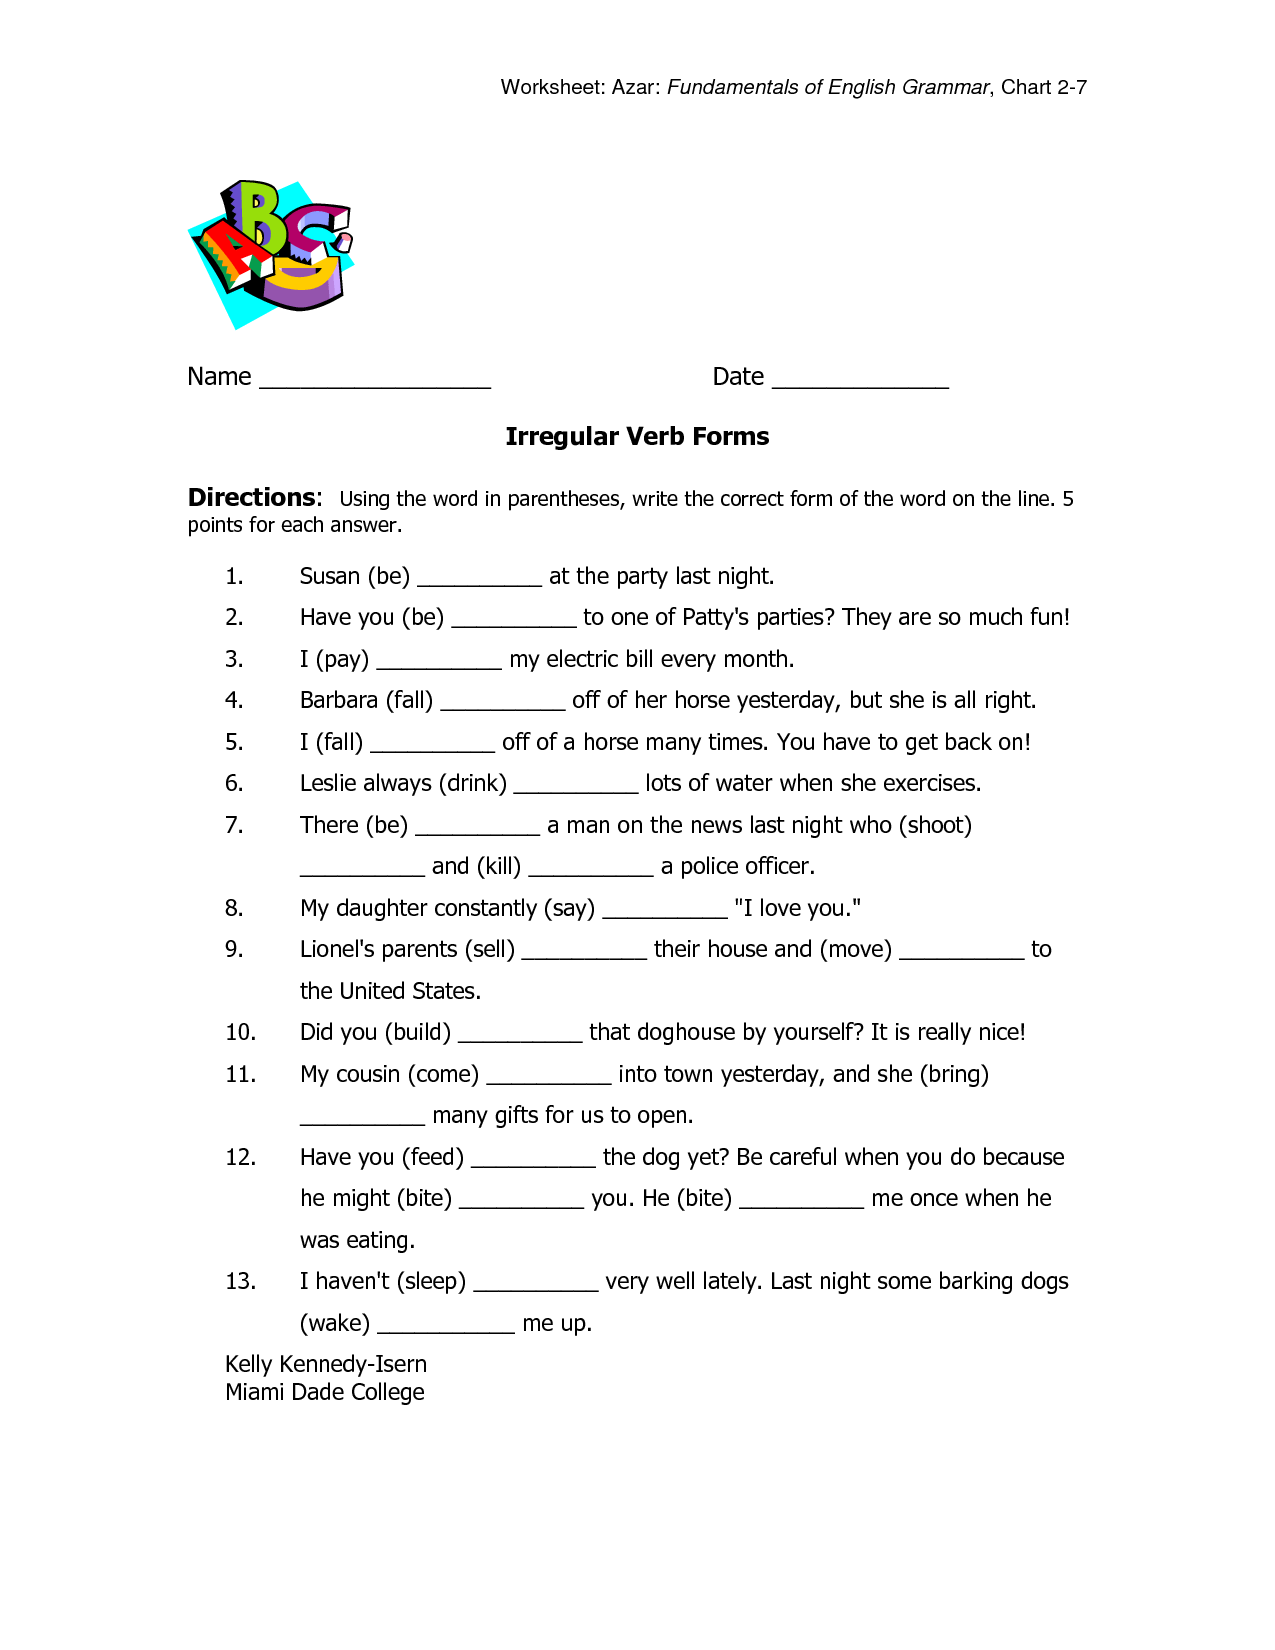 Worksheet On Tenses For Class 6